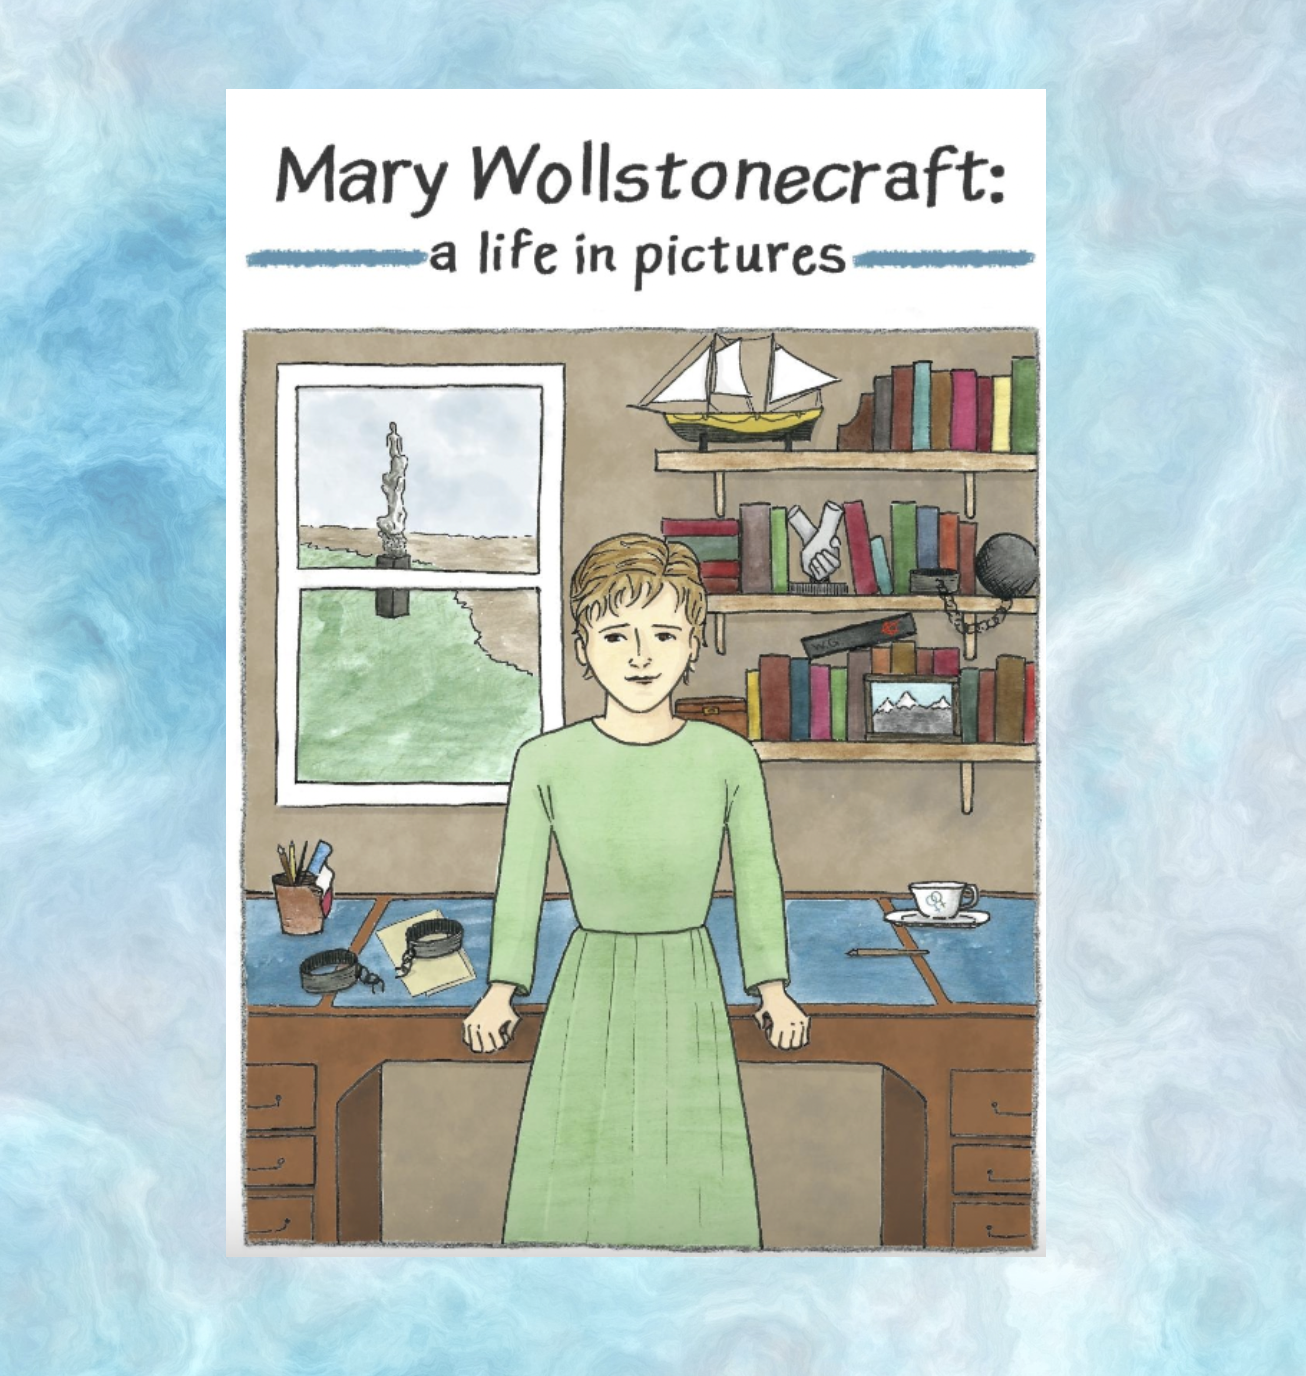 Mary Wollstonecraft: A Life in Pictures by Martha Mackay (comic)